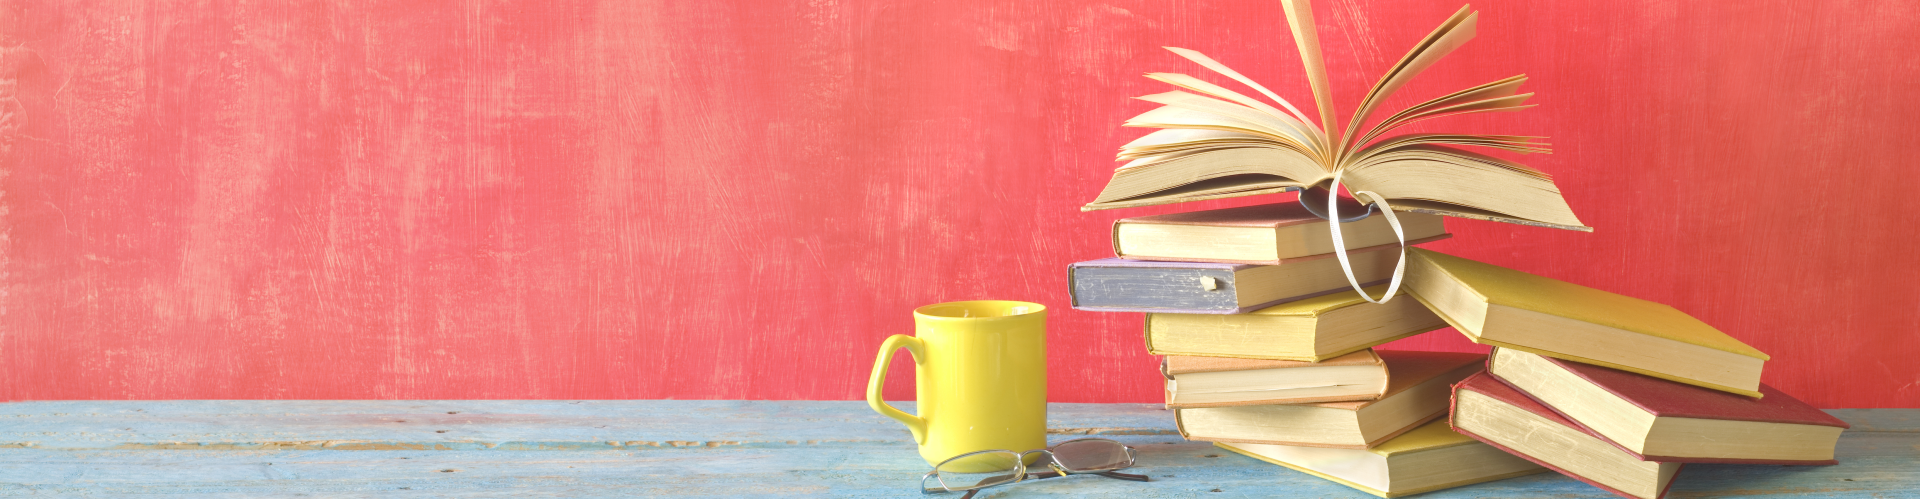 image of piled books, a mug, and reading glasses on bright pink background